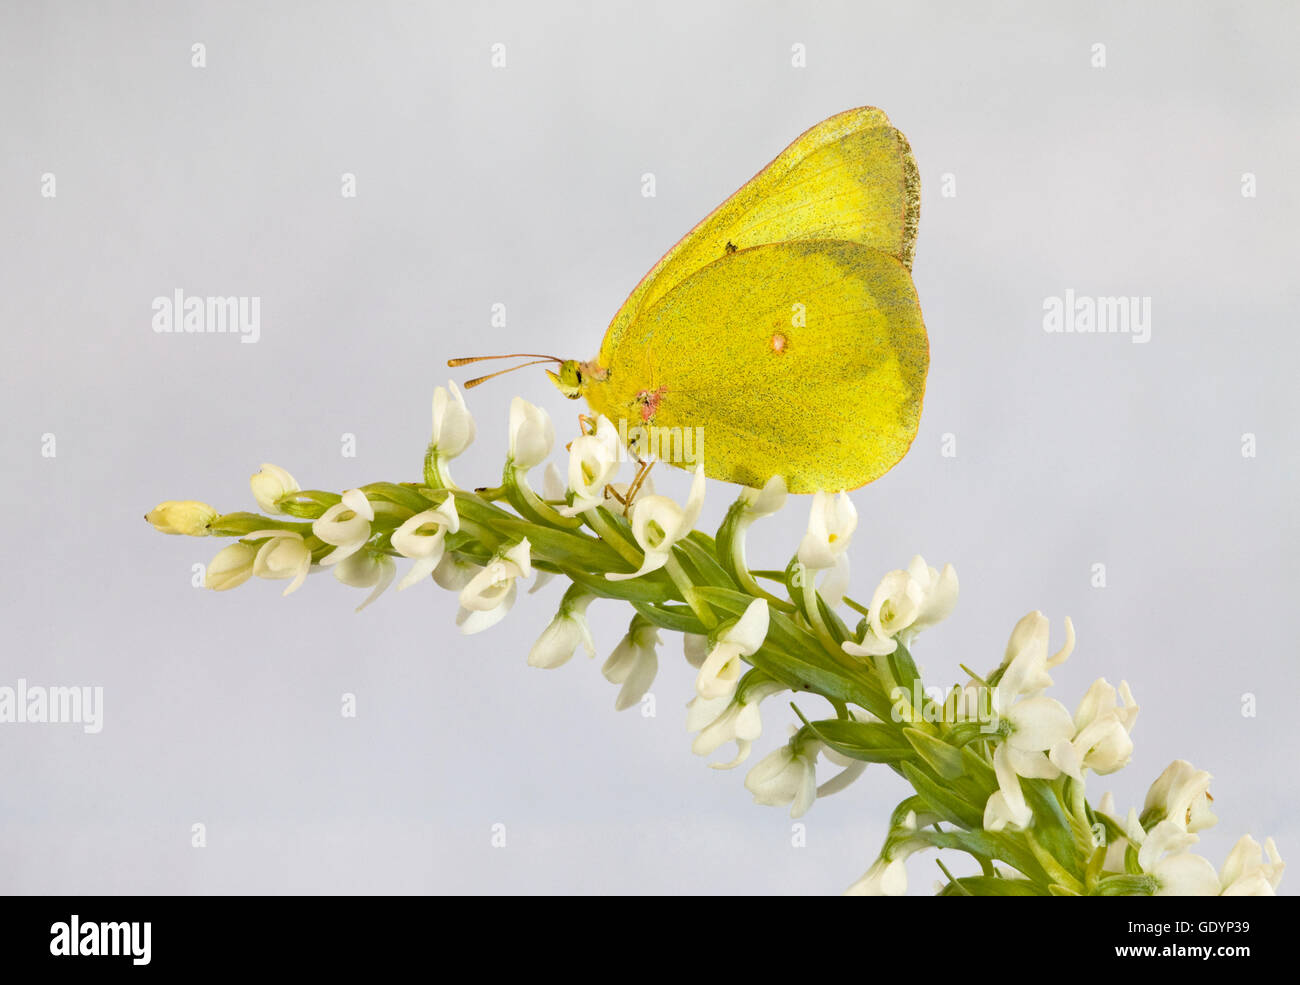 A clouded sulphur butterfly, Colias philodice, taking nectar from a flower - Stock Image